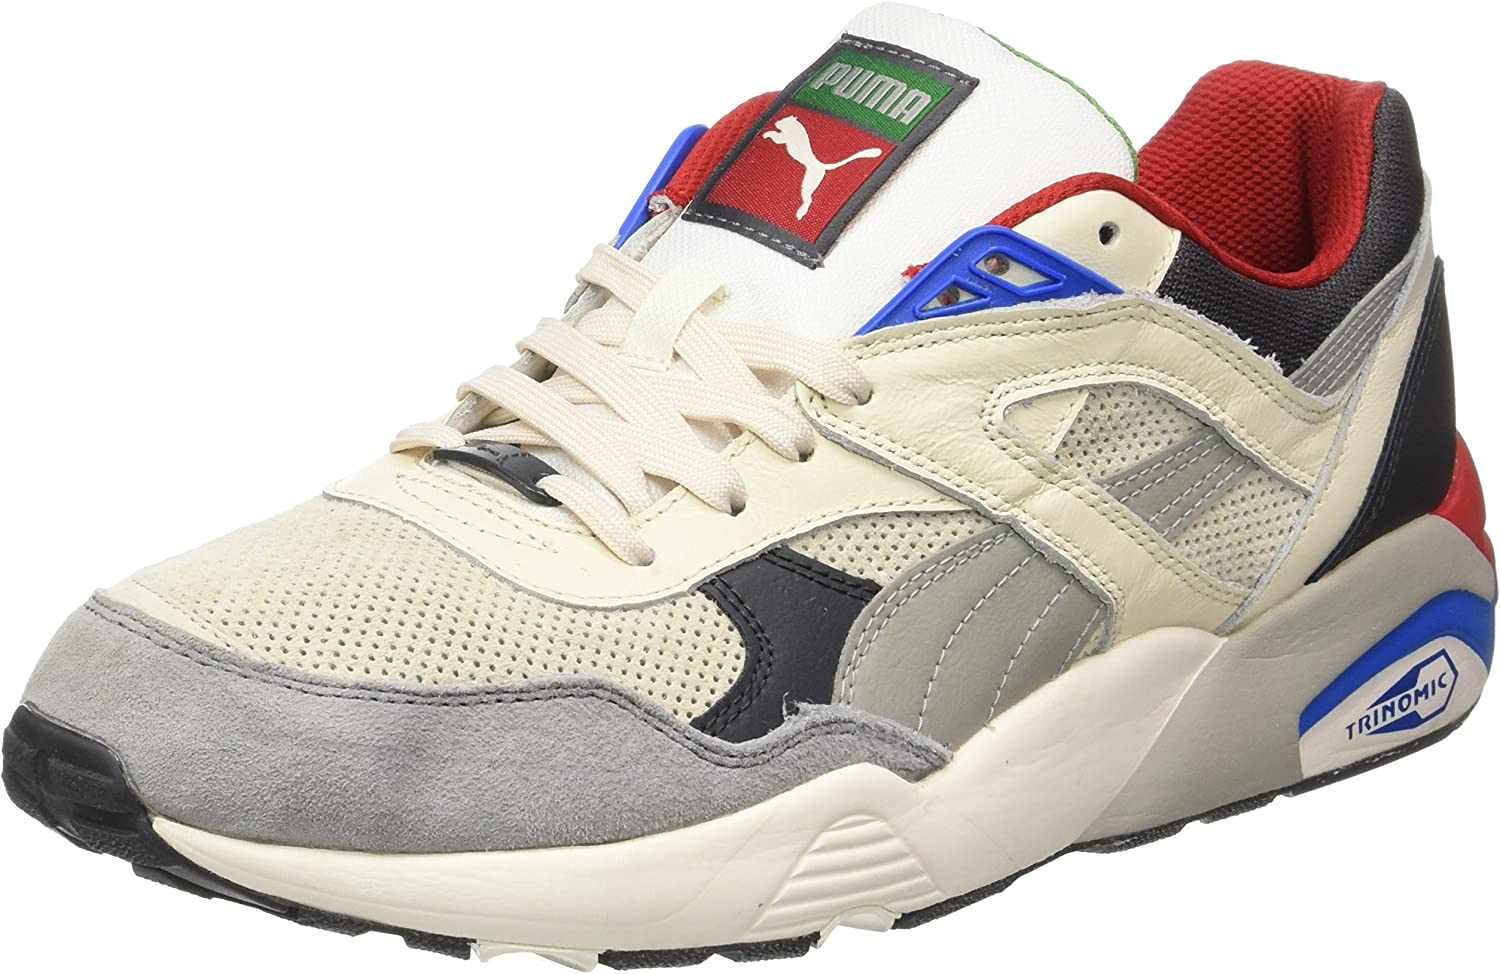 Puma Men's R698 Flag Low-Top Sneakers